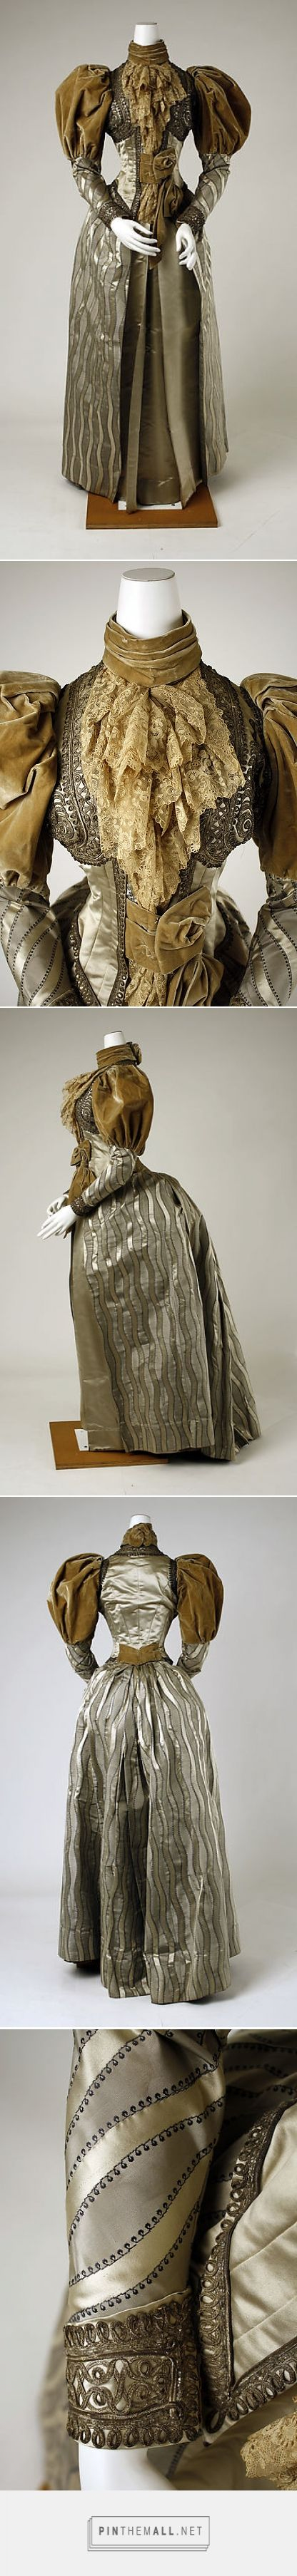 Dress ca. 1894 probably American | The Metropolitan Museum of Art